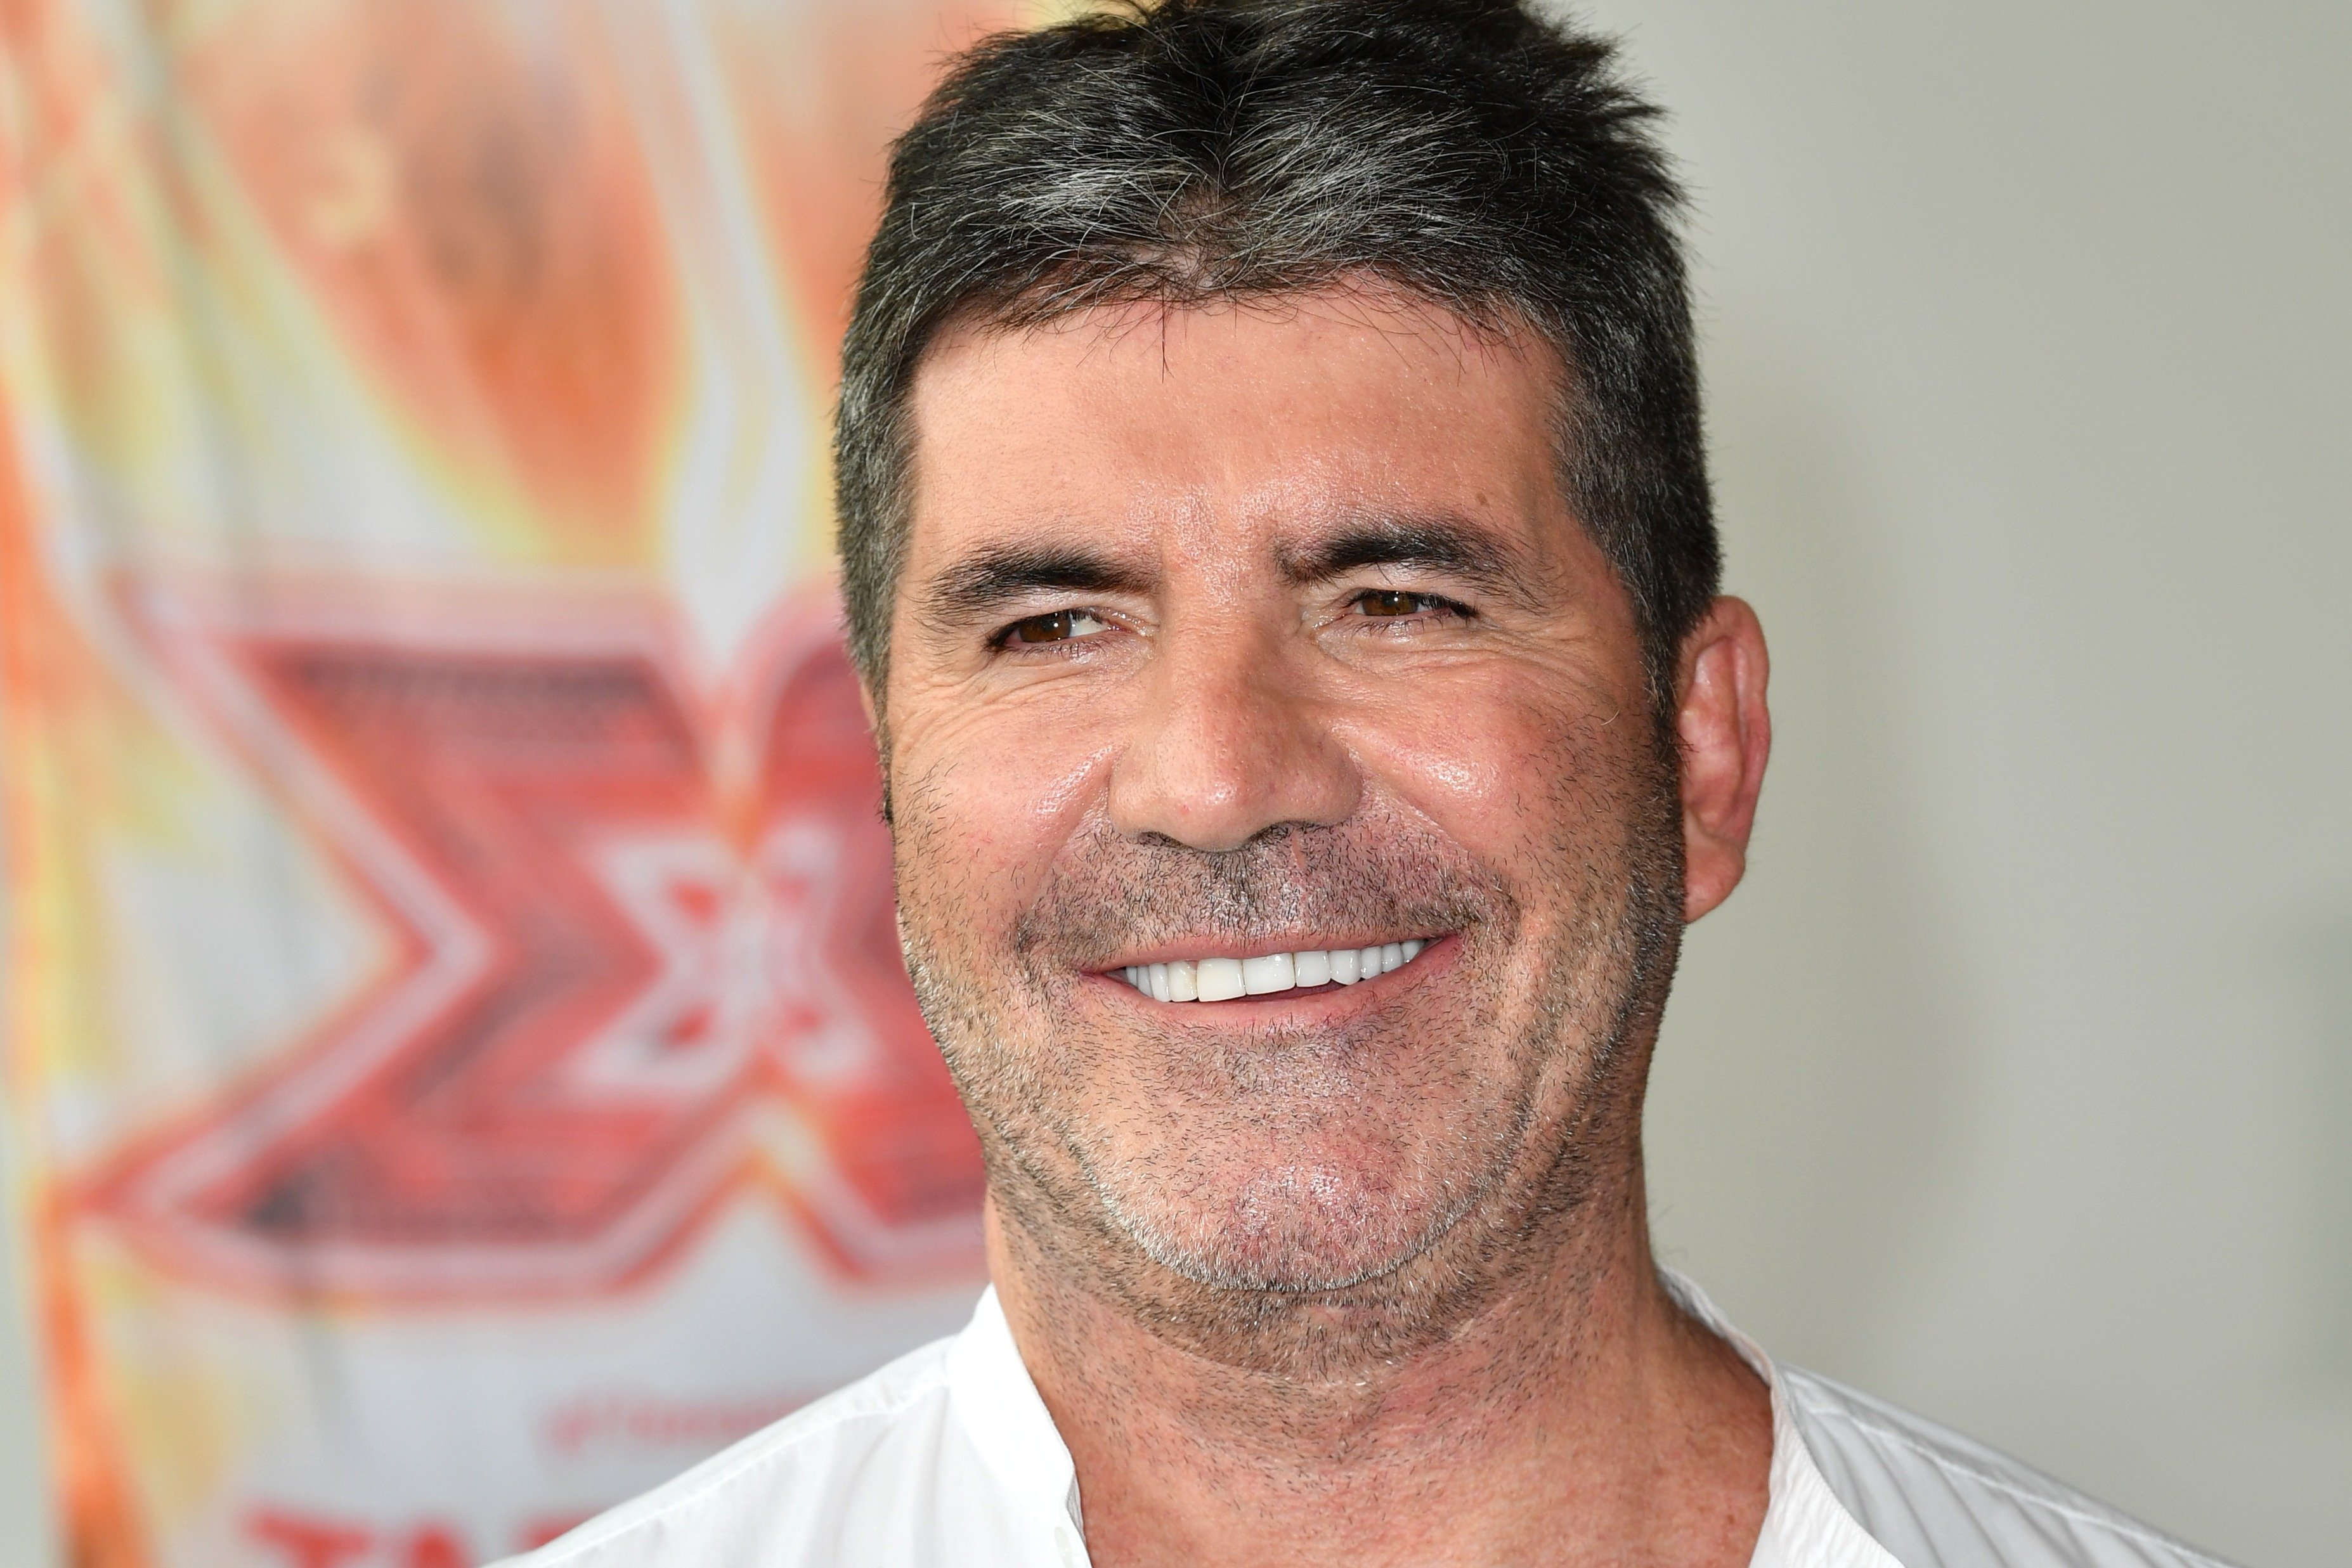 Simon Cowell Image Source: Getty Images.